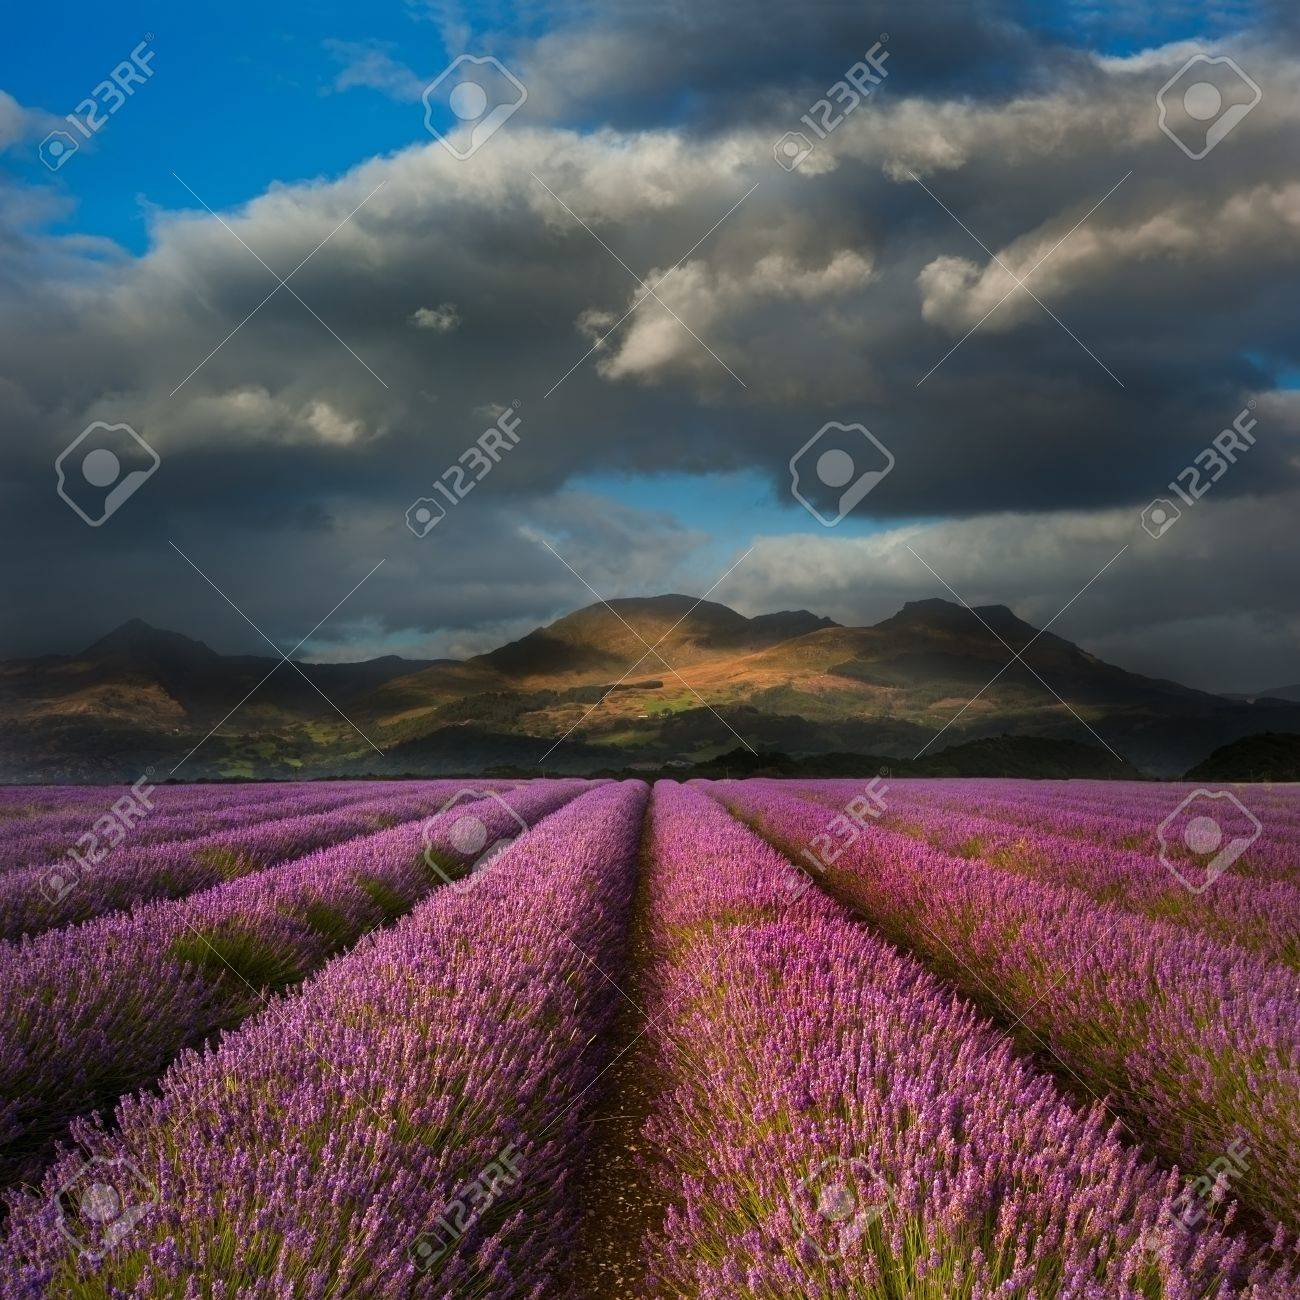 Dramatic sky over landscape of mountain range with lavender field in foreground Stock Photo - 16057425